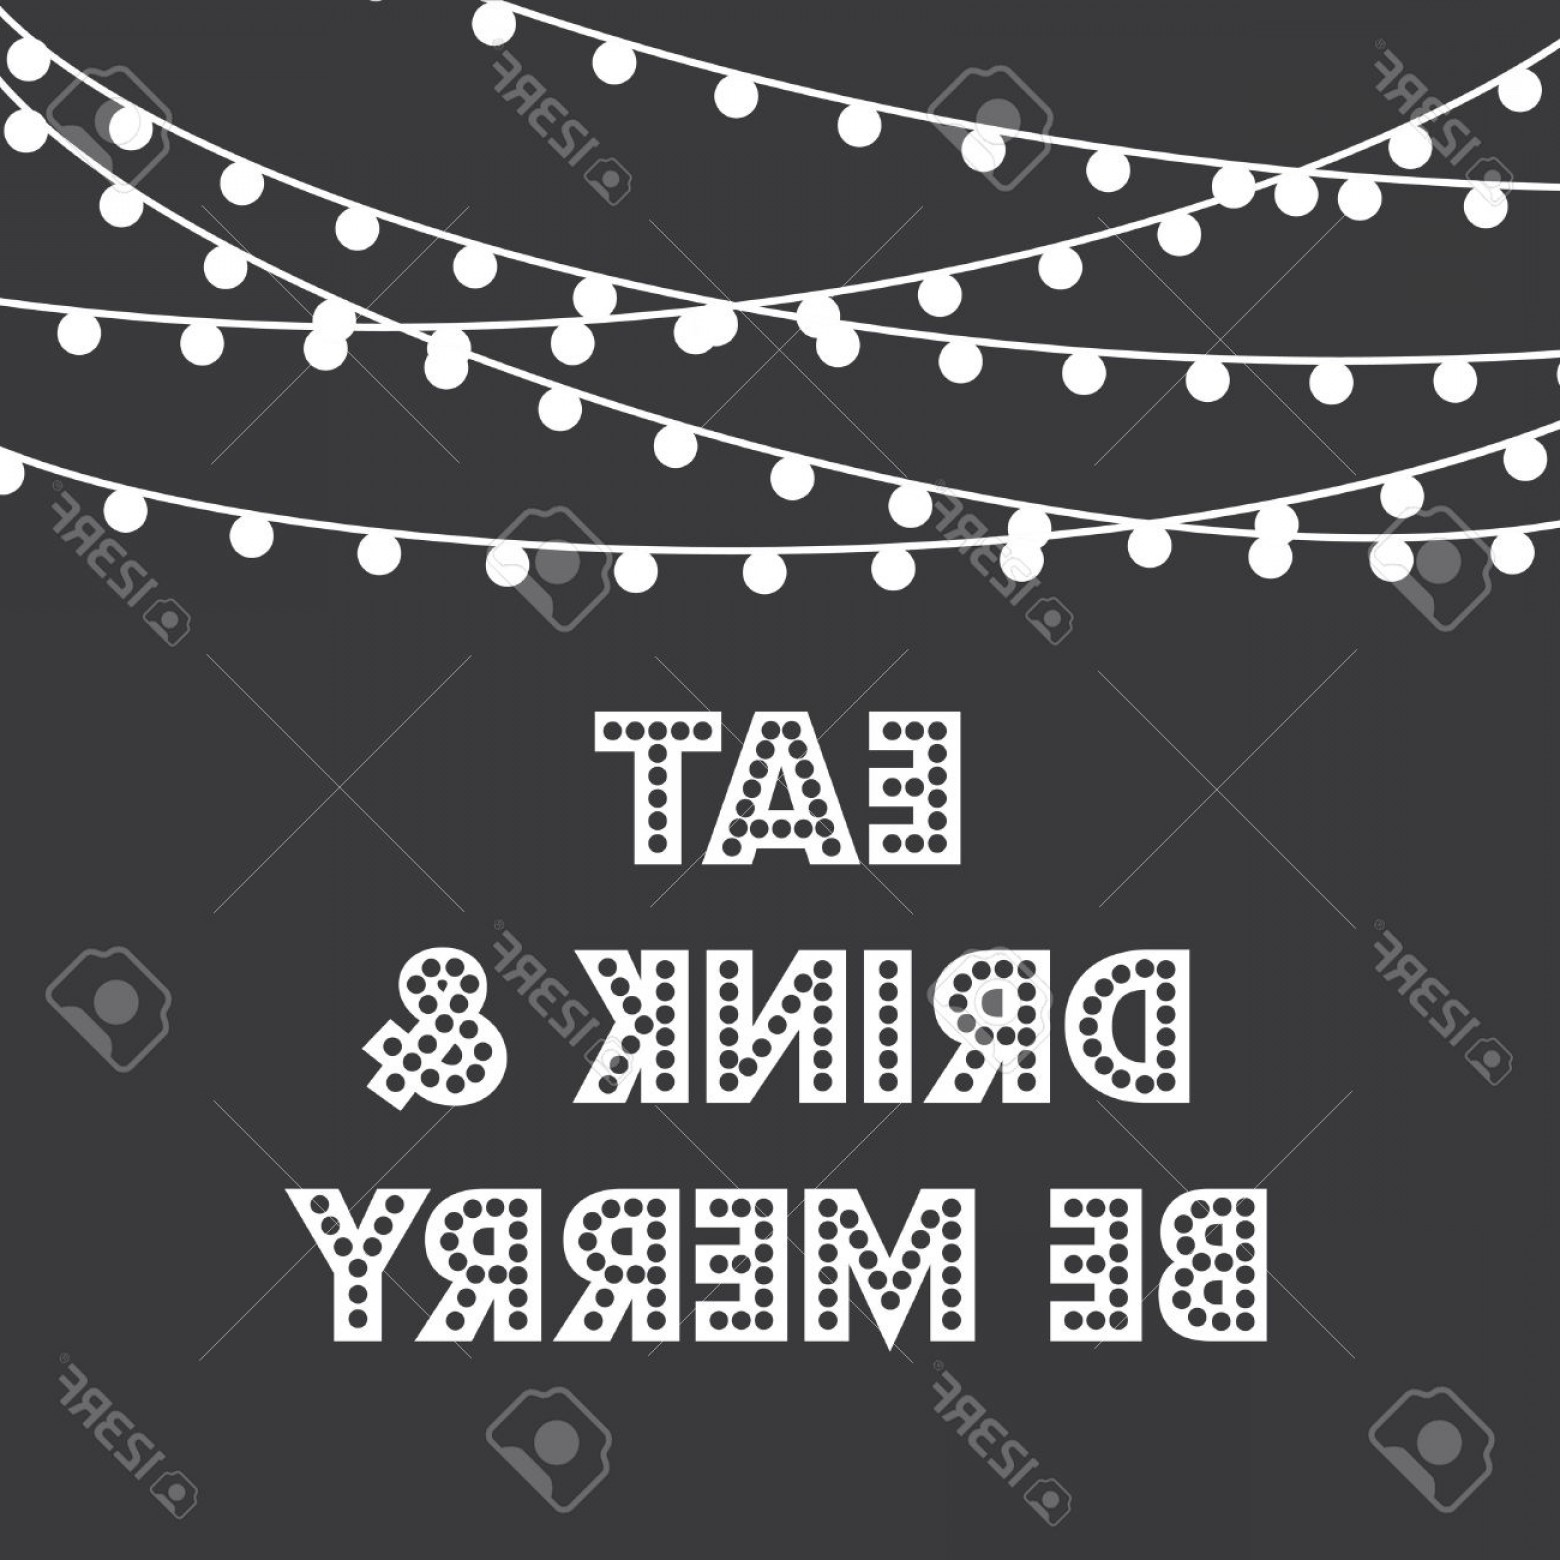 1560x1560 String Lights Clipart No Background Free Shopatcloth